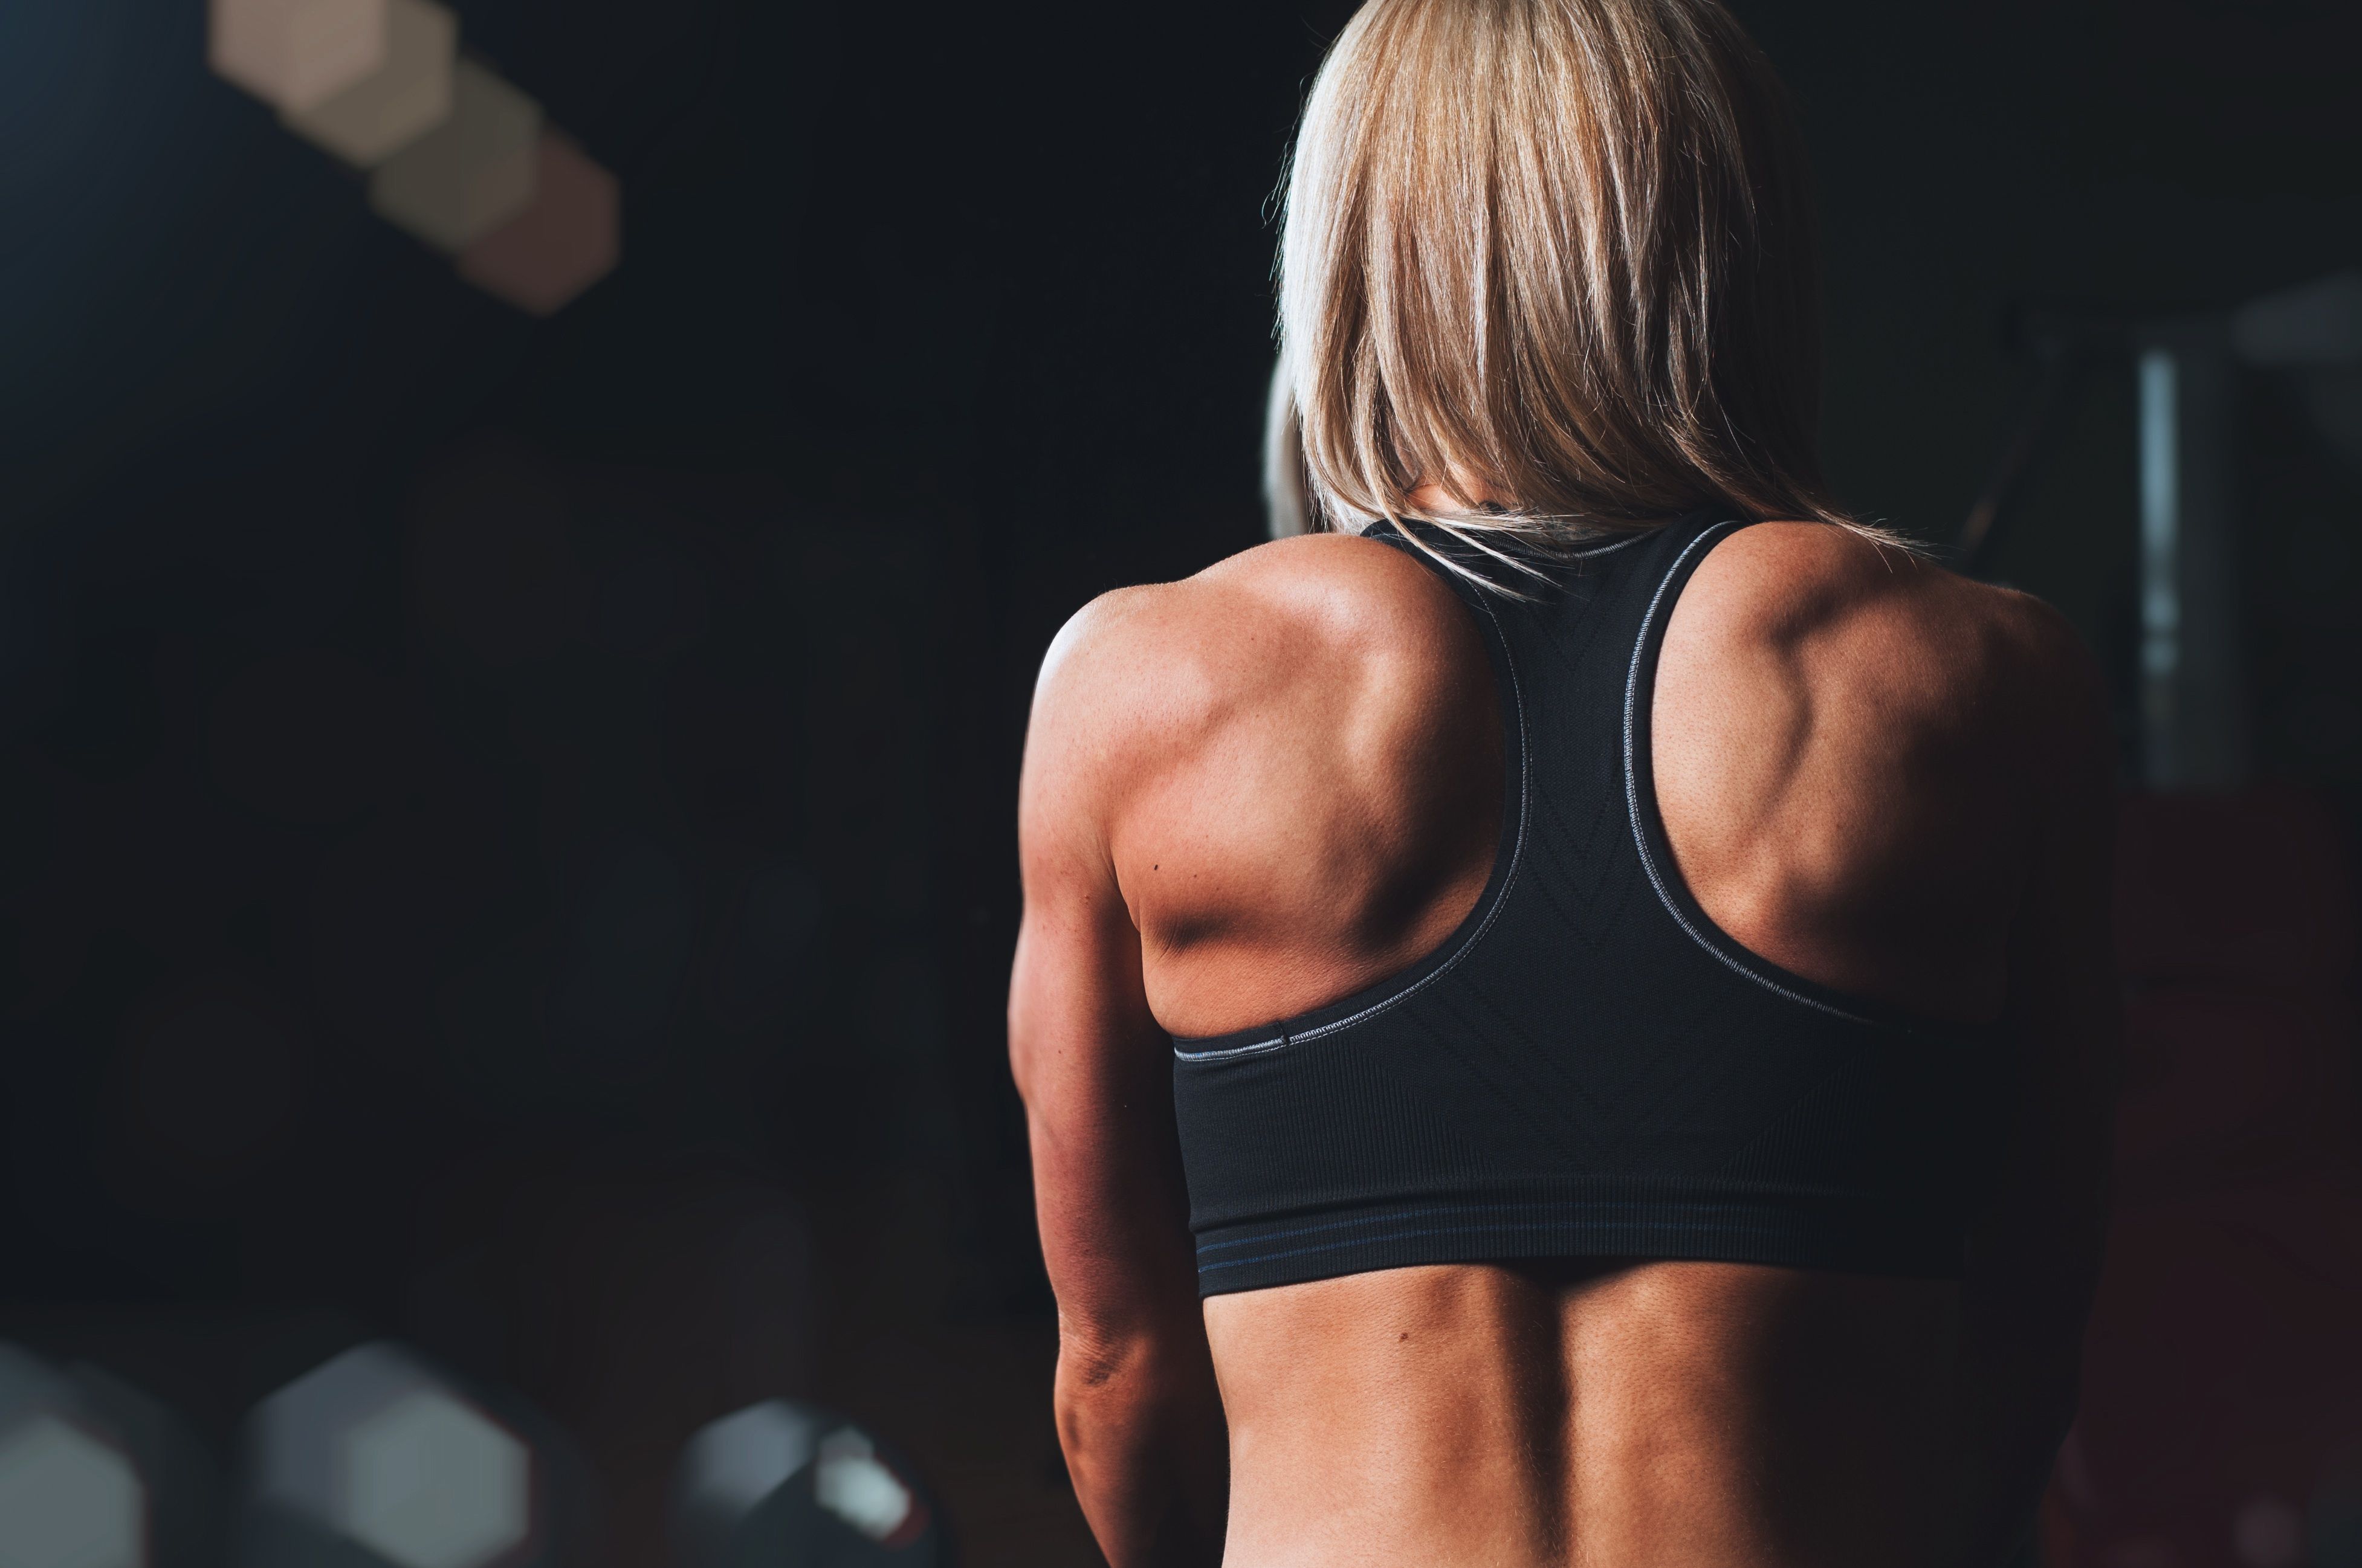 Physique, Woman, Sport, Girl, Exercise, HQ Photo